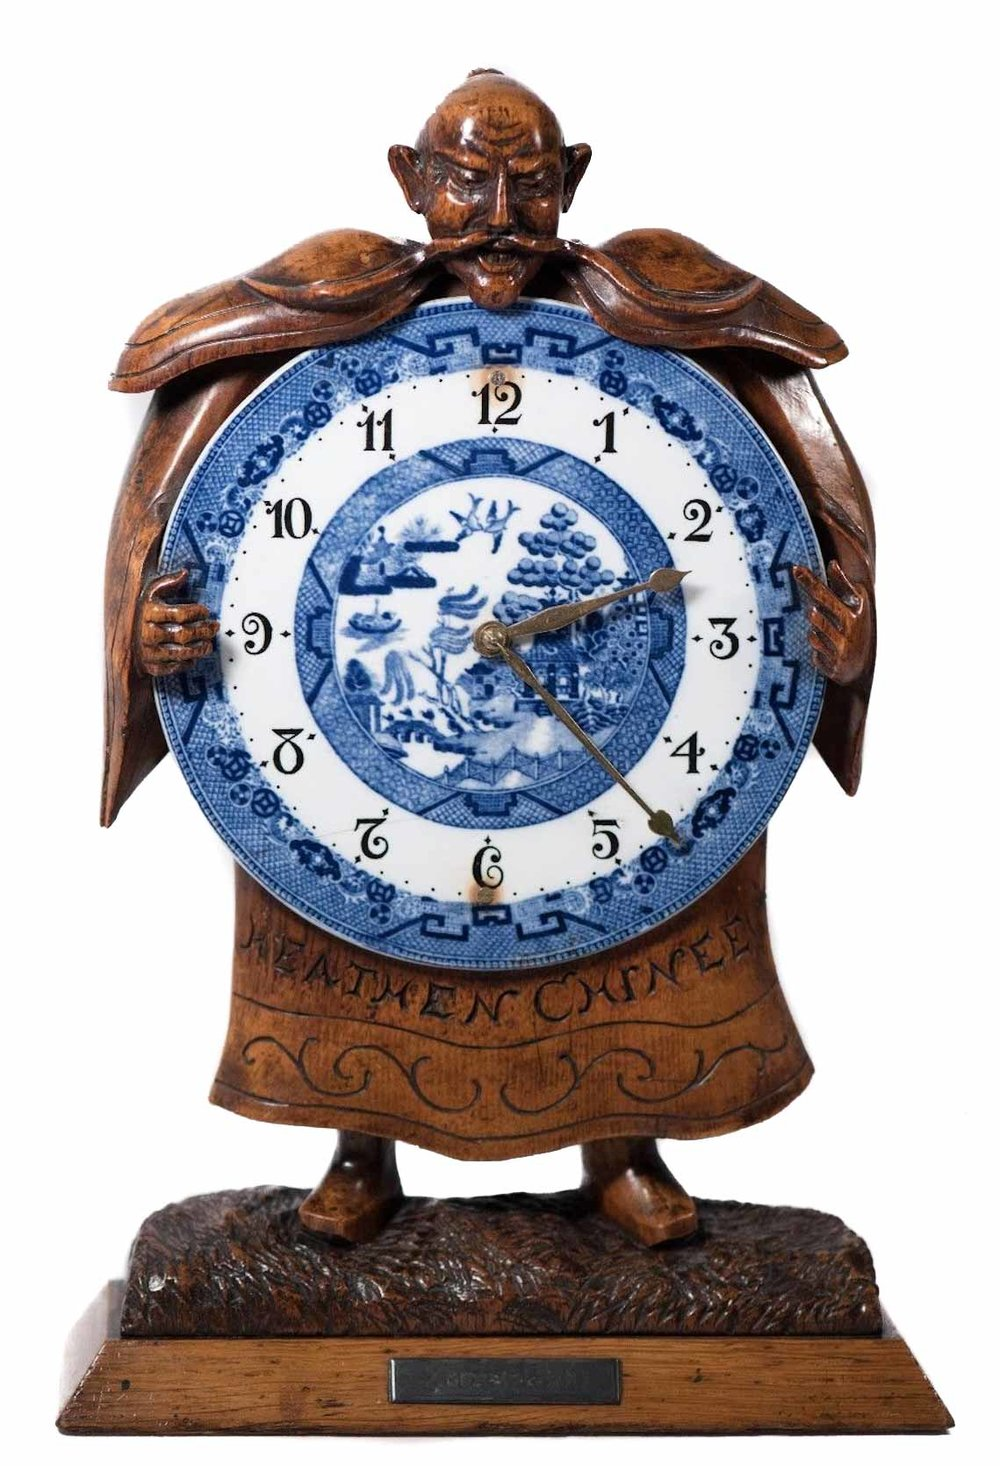 Fine Art Objects Collection - Click to view out current, one of a kind collection of Fine Art ObjectsFrom rare 19th century clocks to wood carvings from the turn of the 16th century, you never know what may show up!